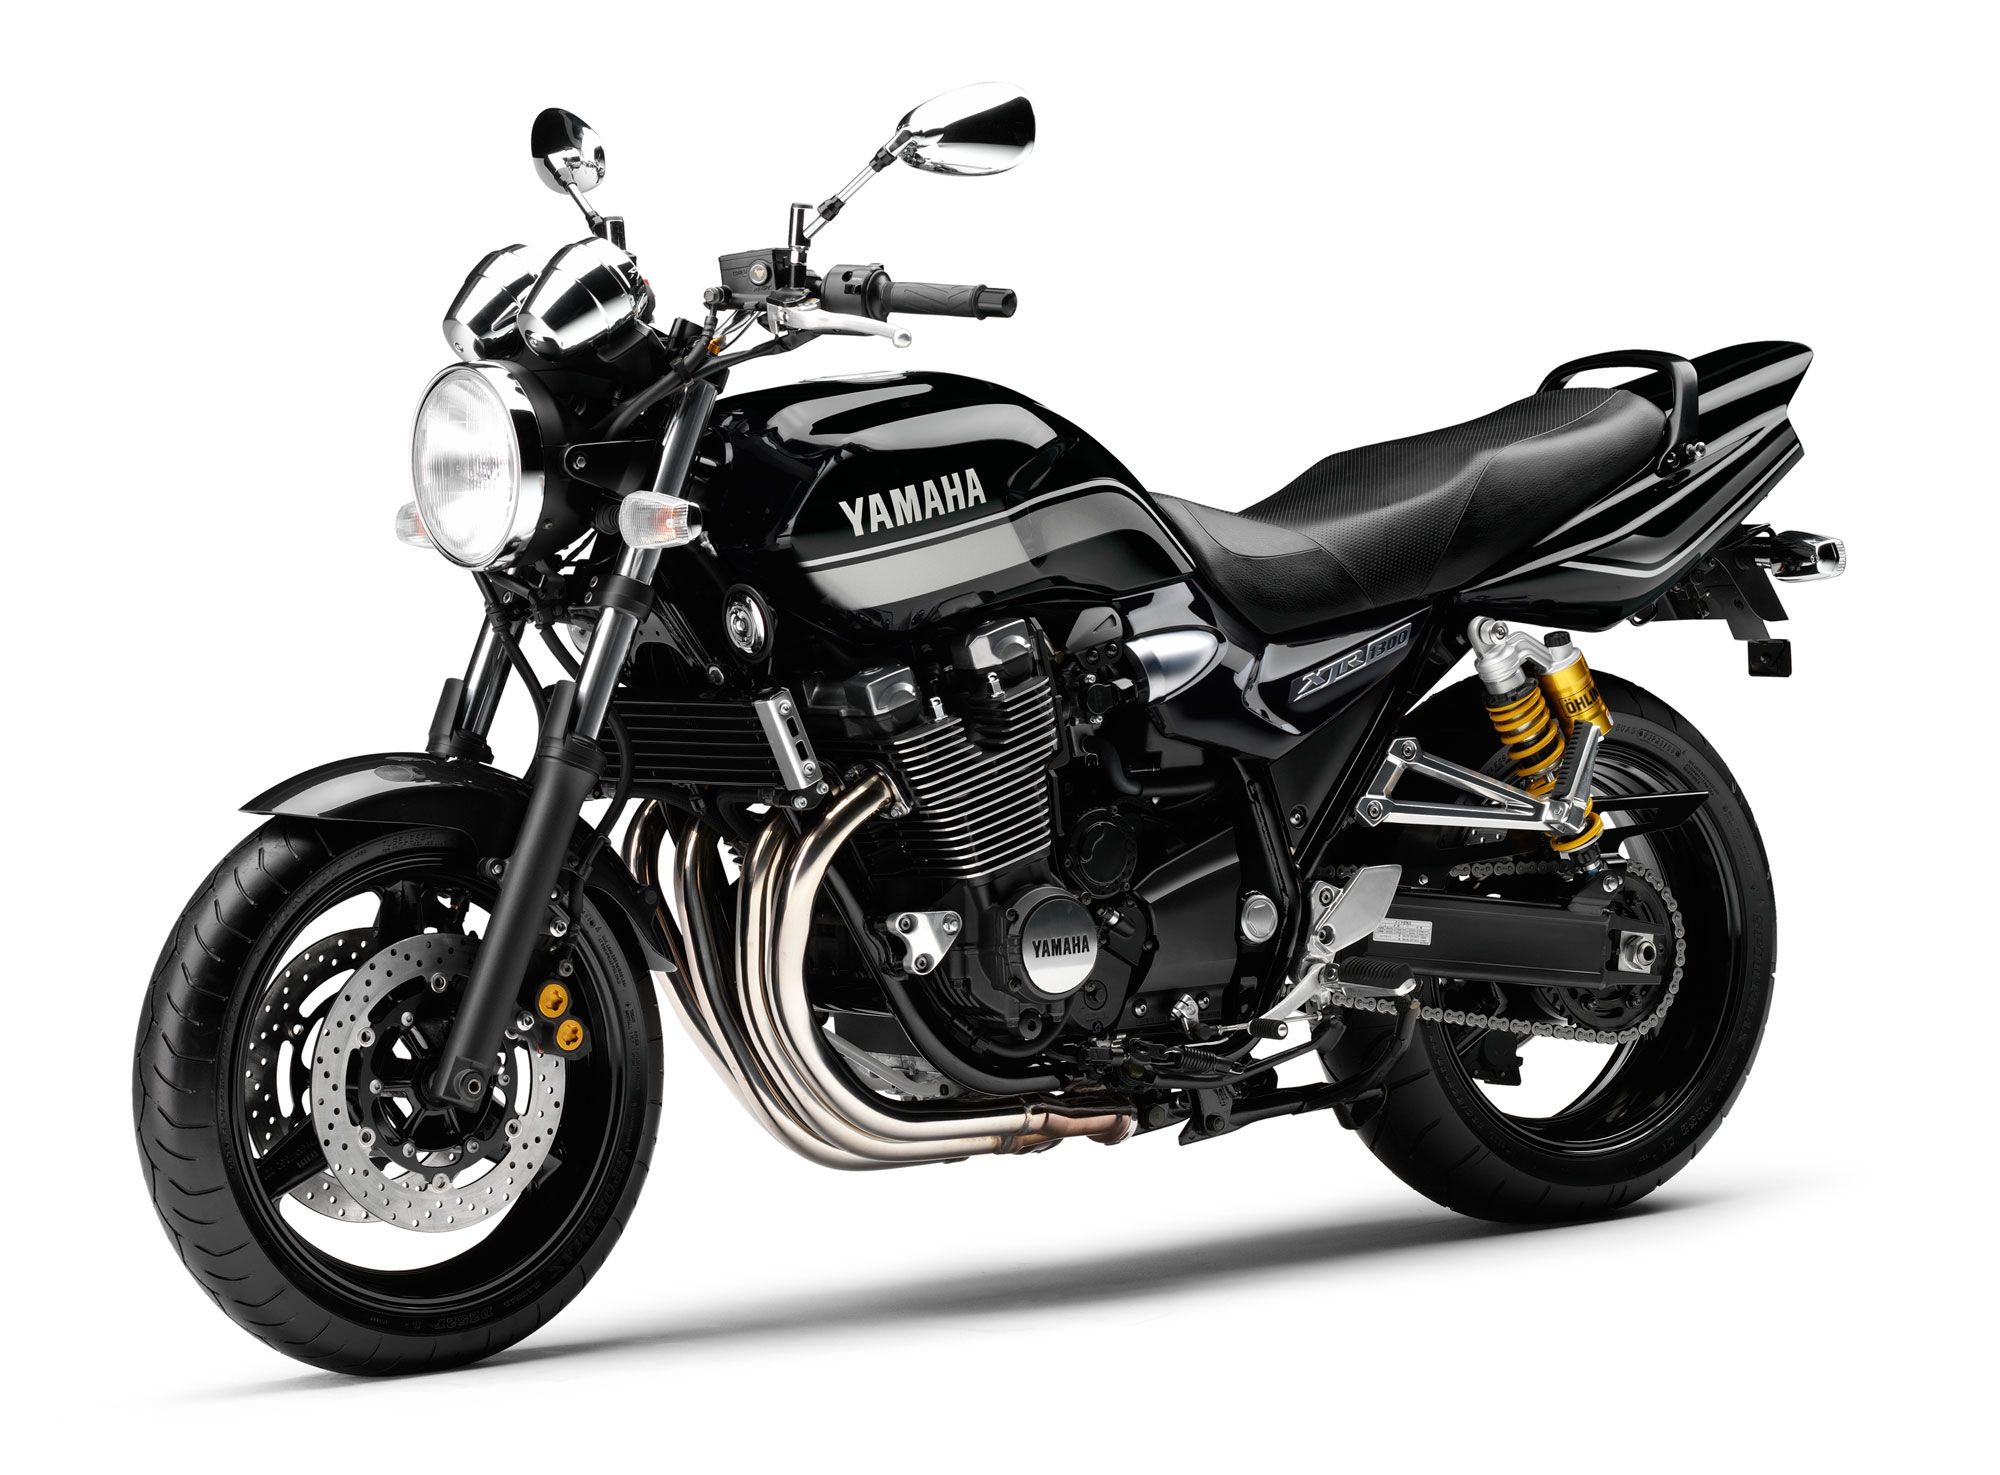 yamaha xjr 1300 2012 fotos de motos pinterest. Black Bedroom Furniture Sets. Home Design Ideas